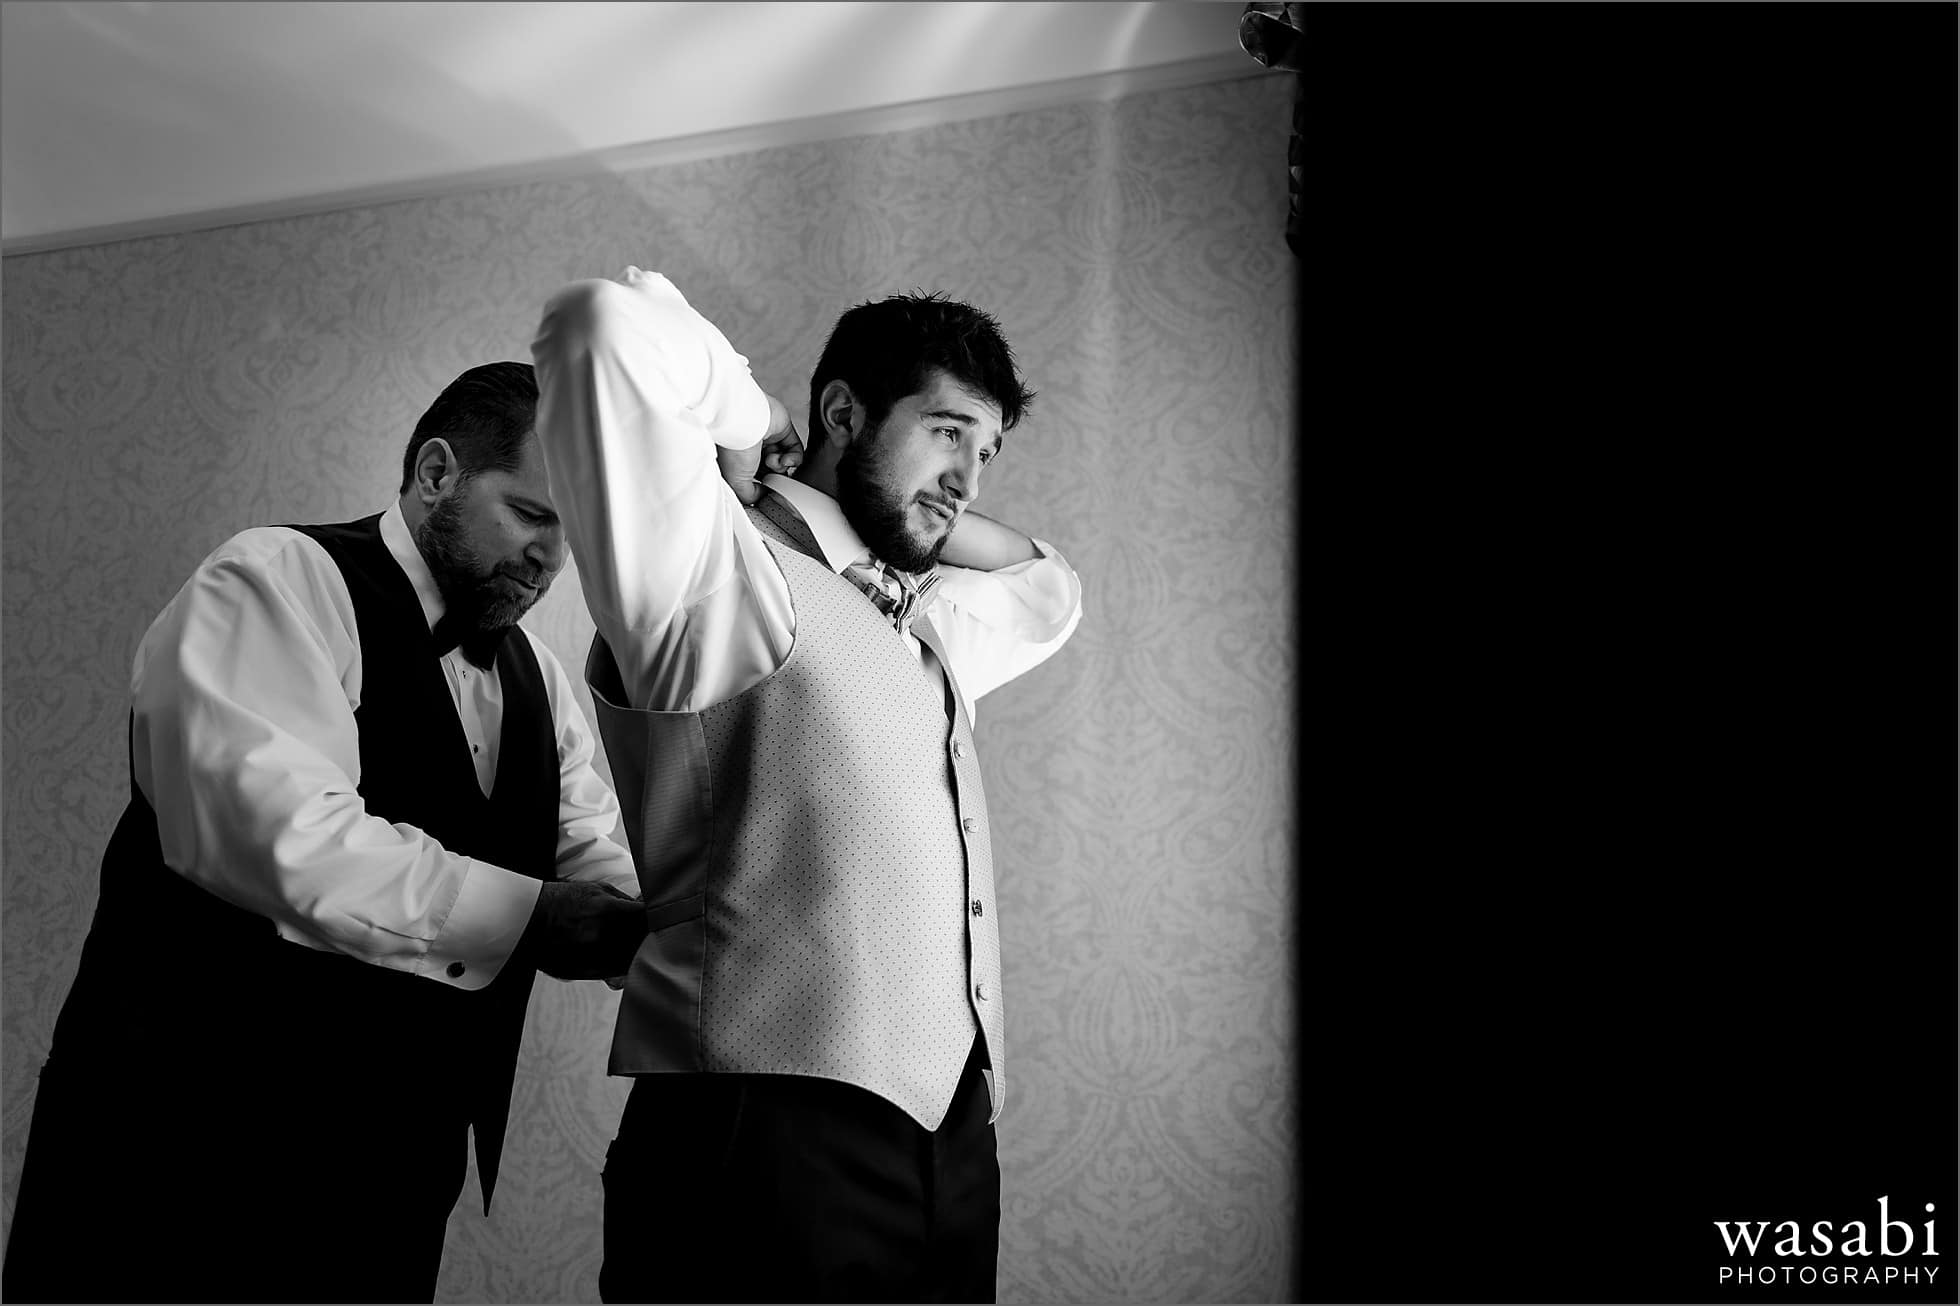 black and white groom and best man getting ready in hotel room with window light